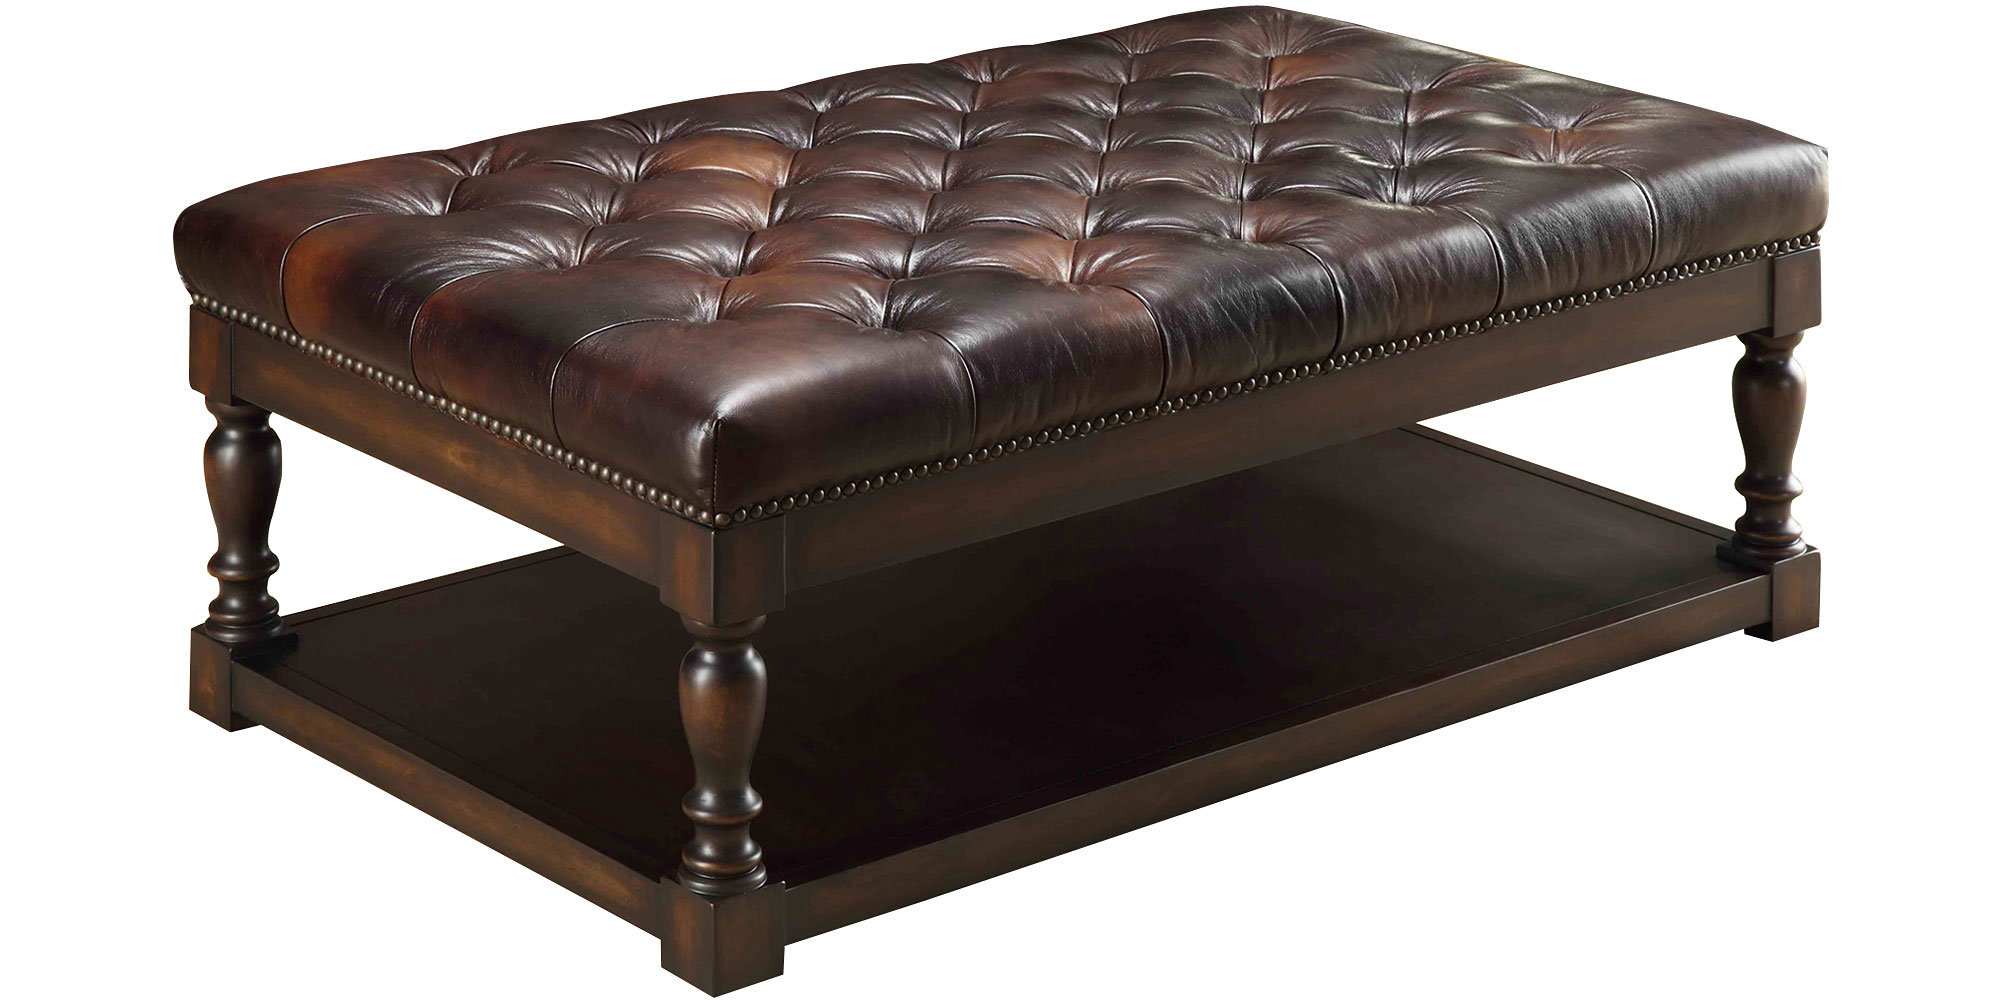 Alfred coffee table leather ottoman ottomans and benches Ottoman bench coffee table